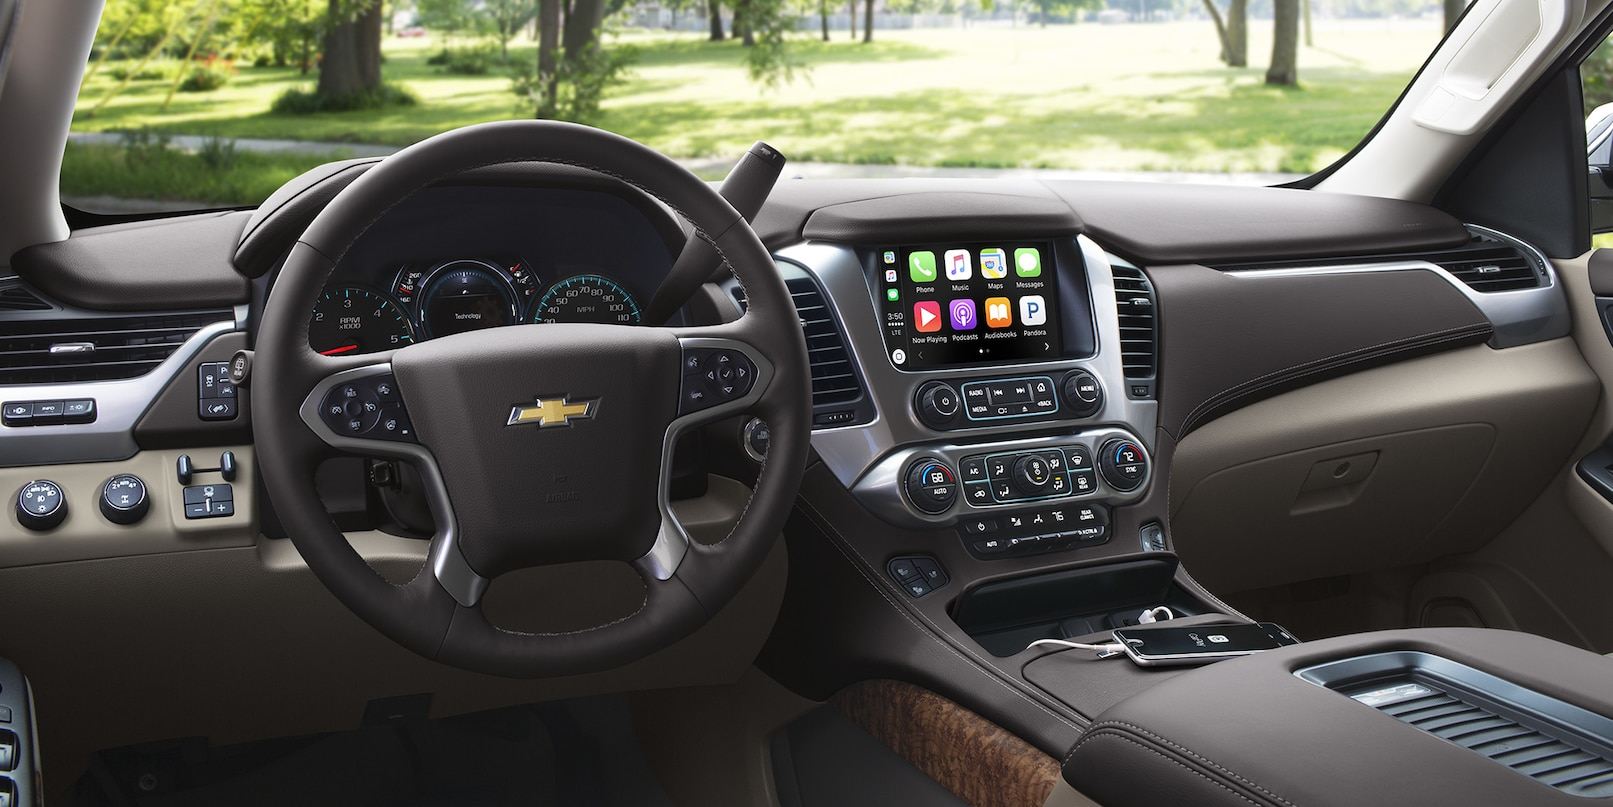 Latest Technology in the 2018 Suburban